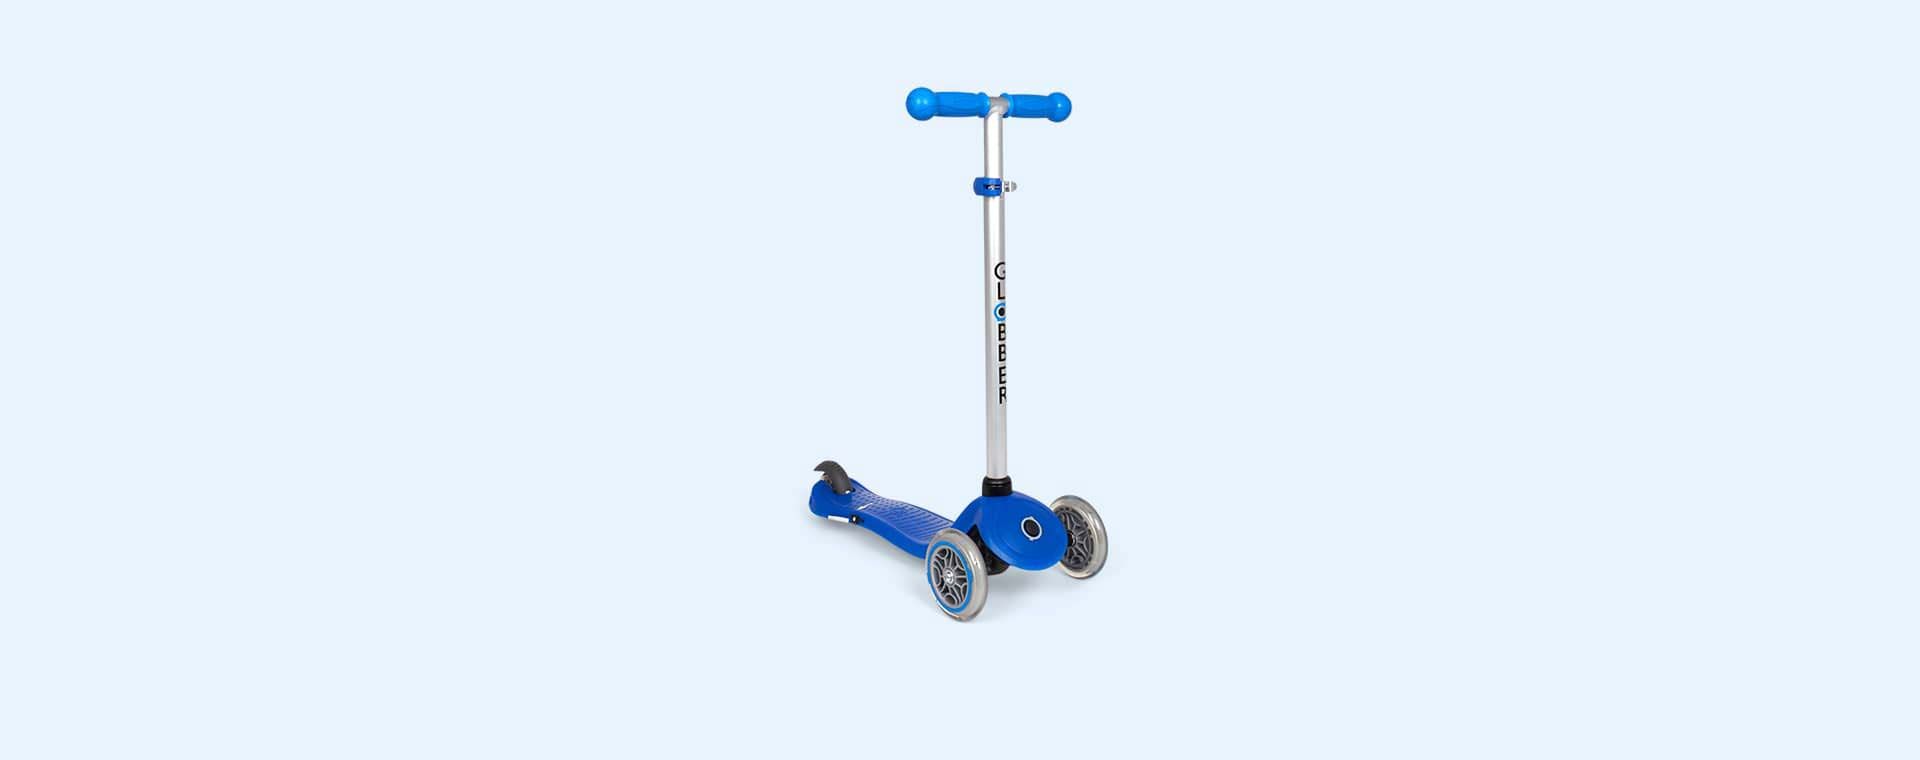 Navy Blue Globber Globber Primo Starlight Scooter